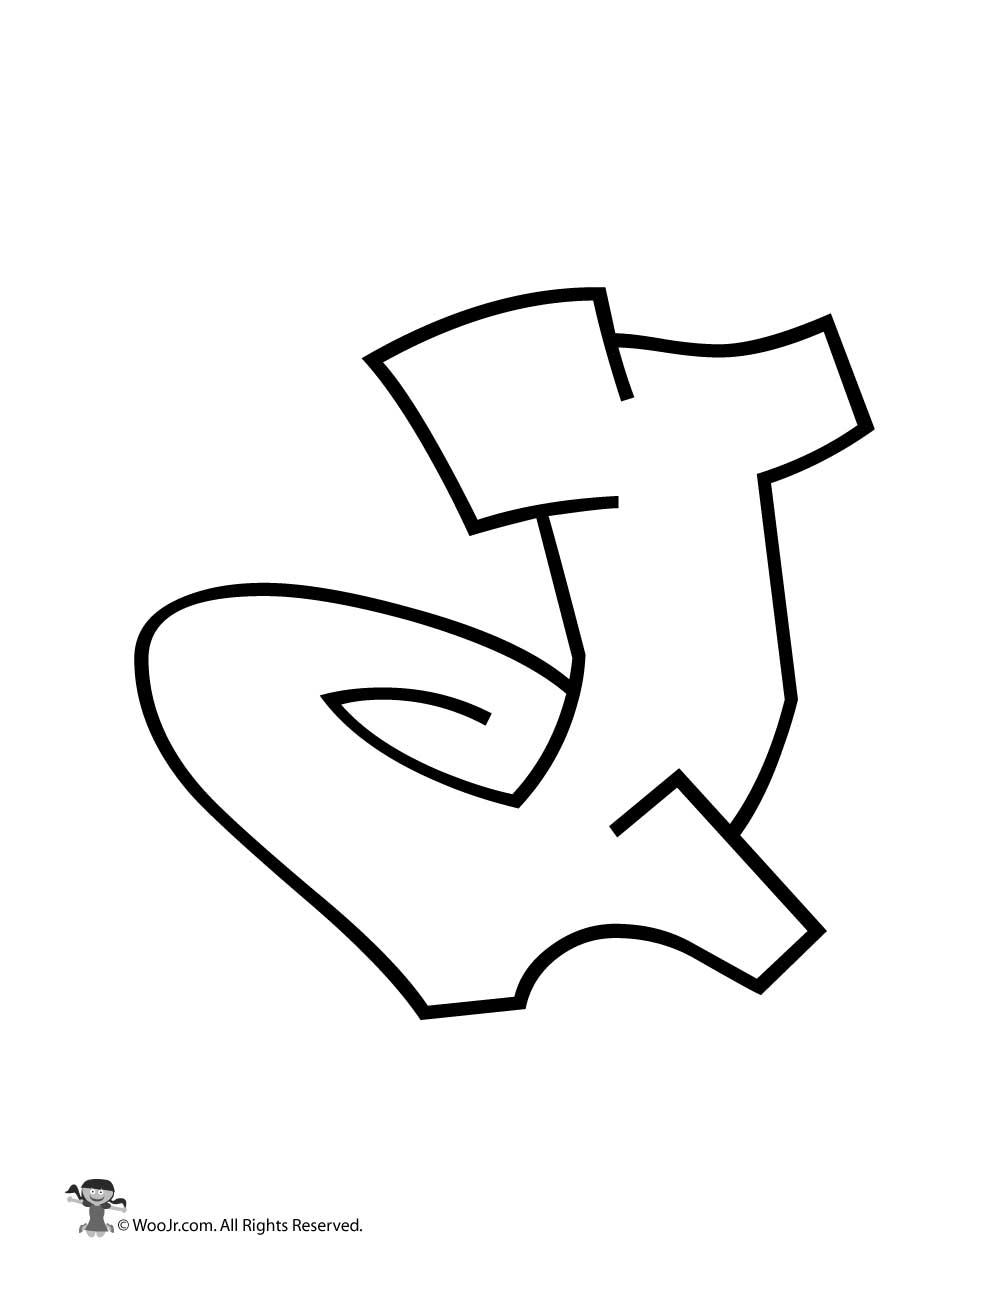 Graffiti Capital Letter J Woo Jr Kids Activities